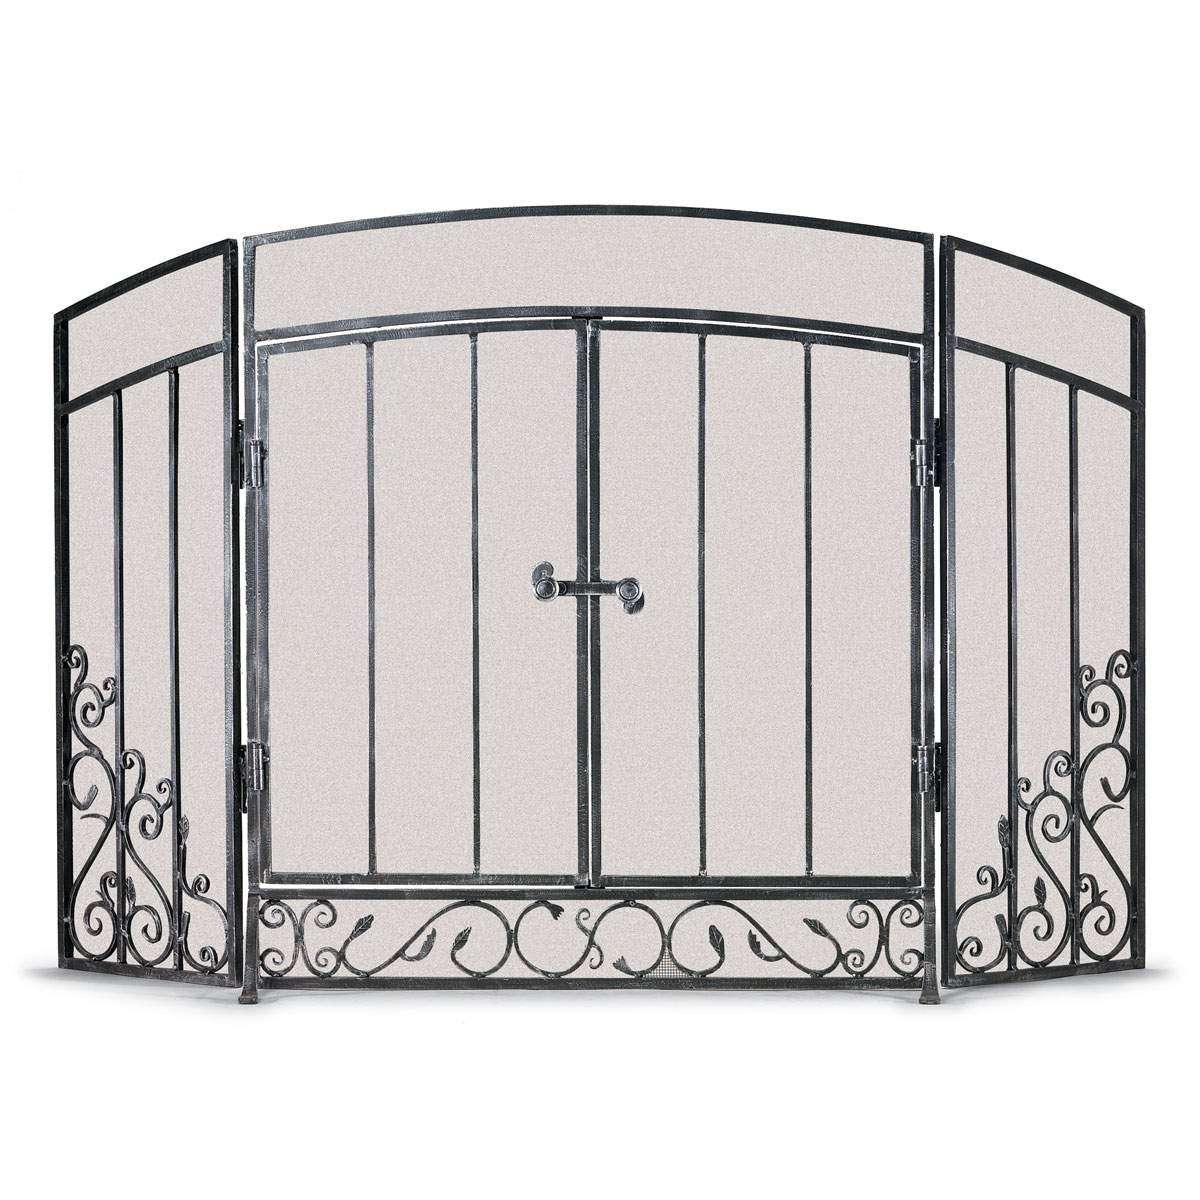 Napa Renaissance 3 Panel Screen With Doors - Brushed Pewter